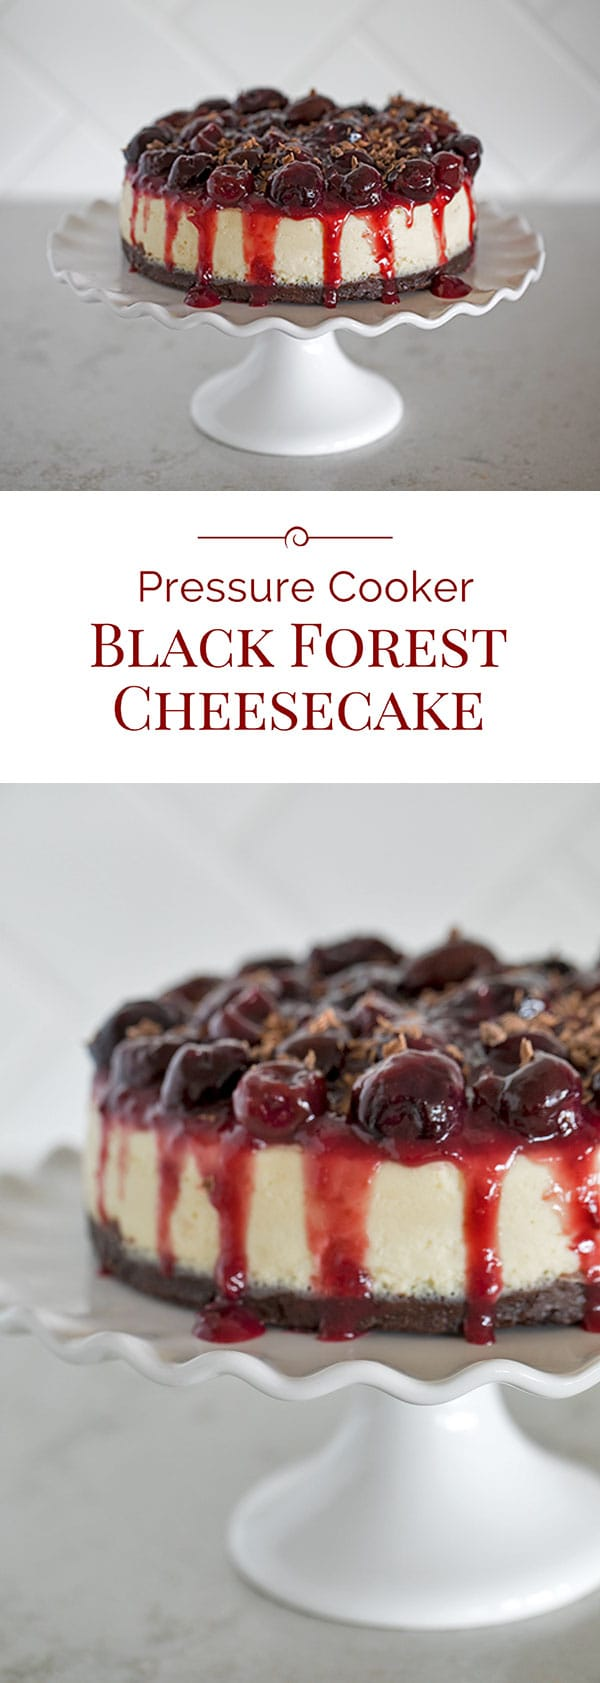 Pressure-Cooker-Black-Forest-Cheesecake-collage